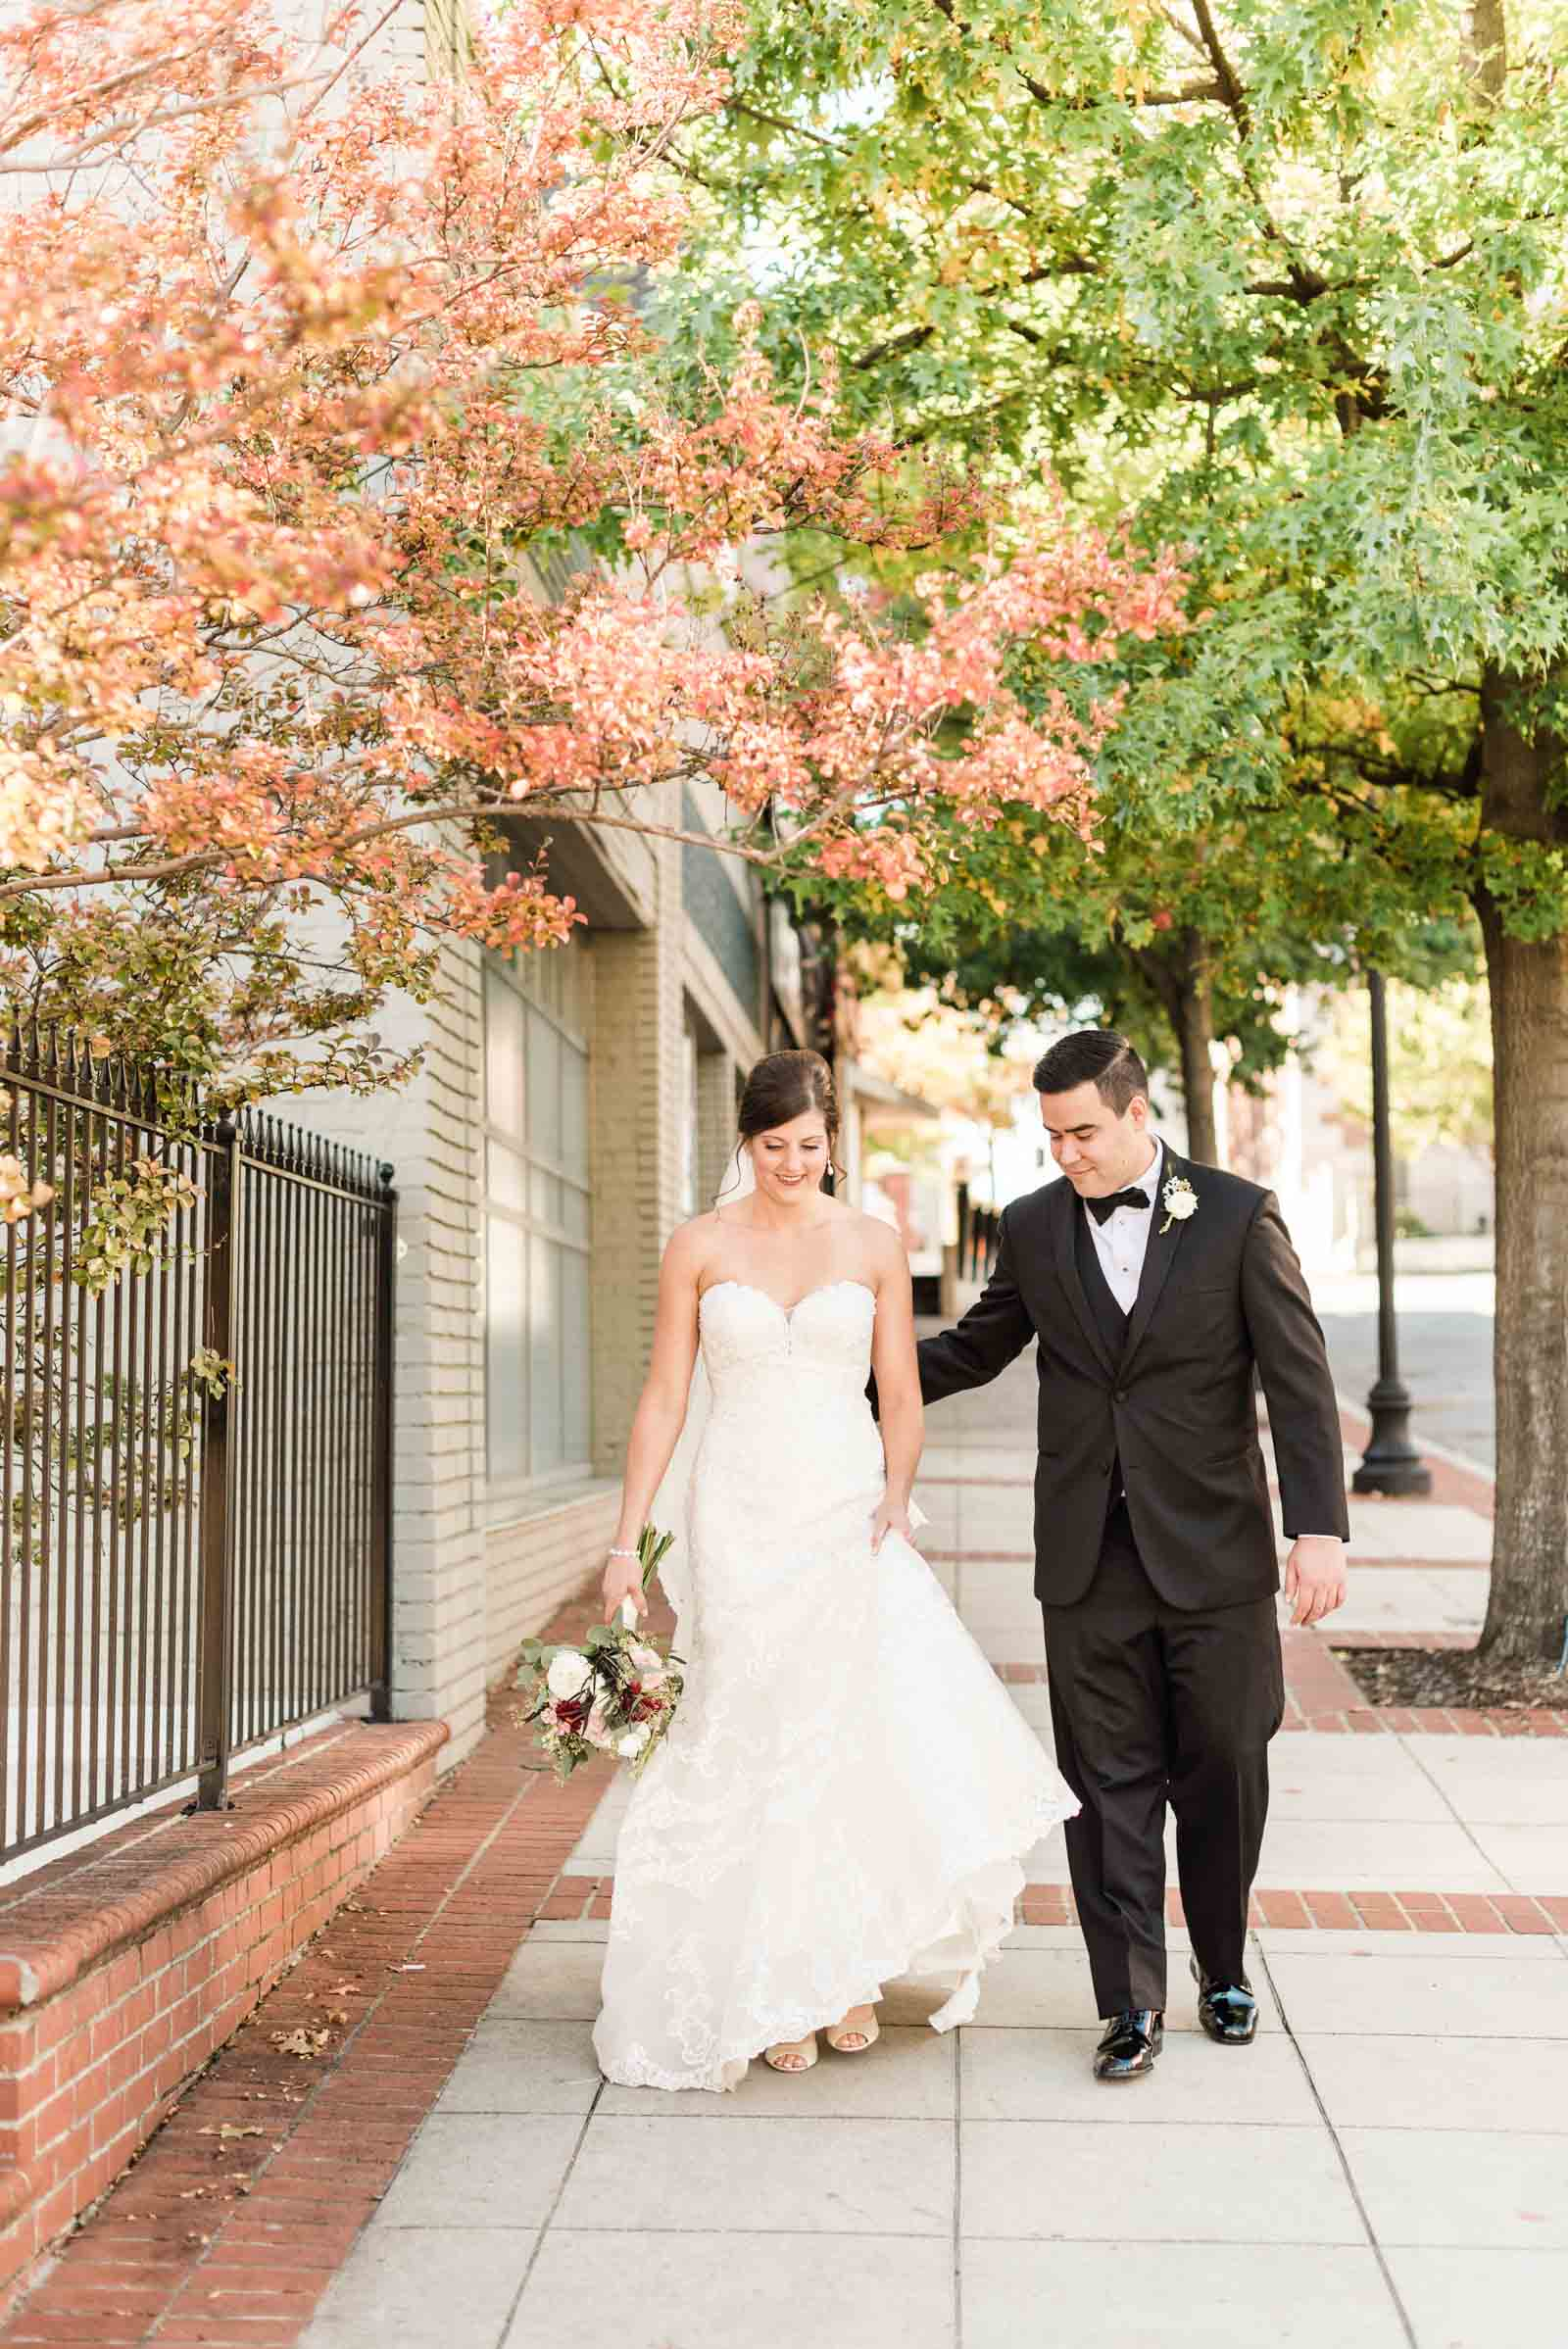 Wedding at Avenue in Greenville SC_Markie Walden Photo-39.jpg